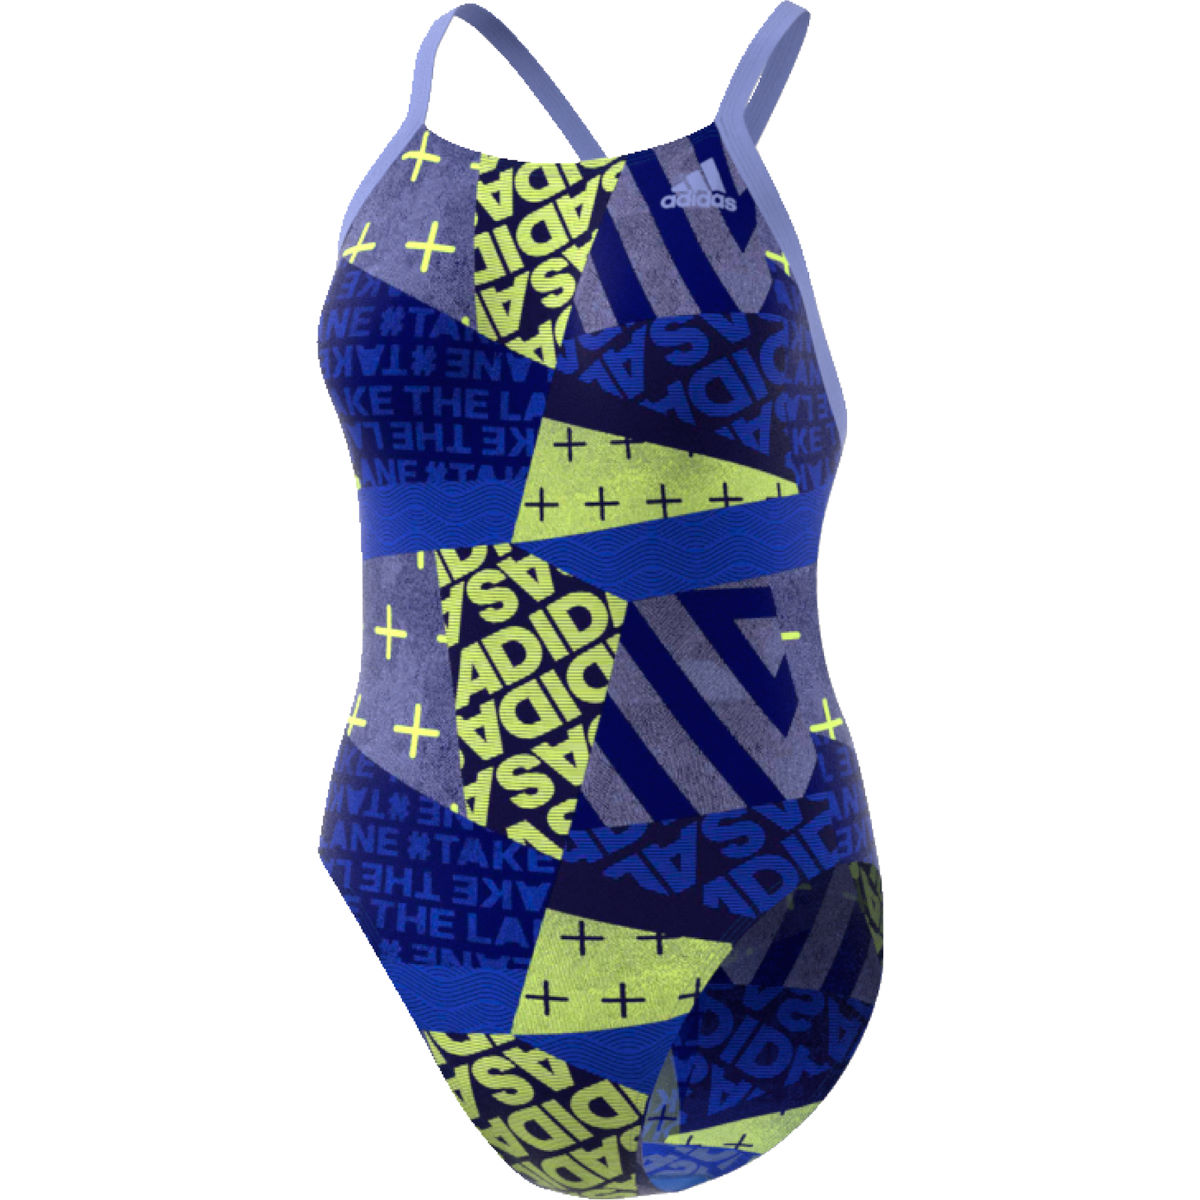 Maillot de bain Femme adidas Performance Training Allover - 32''